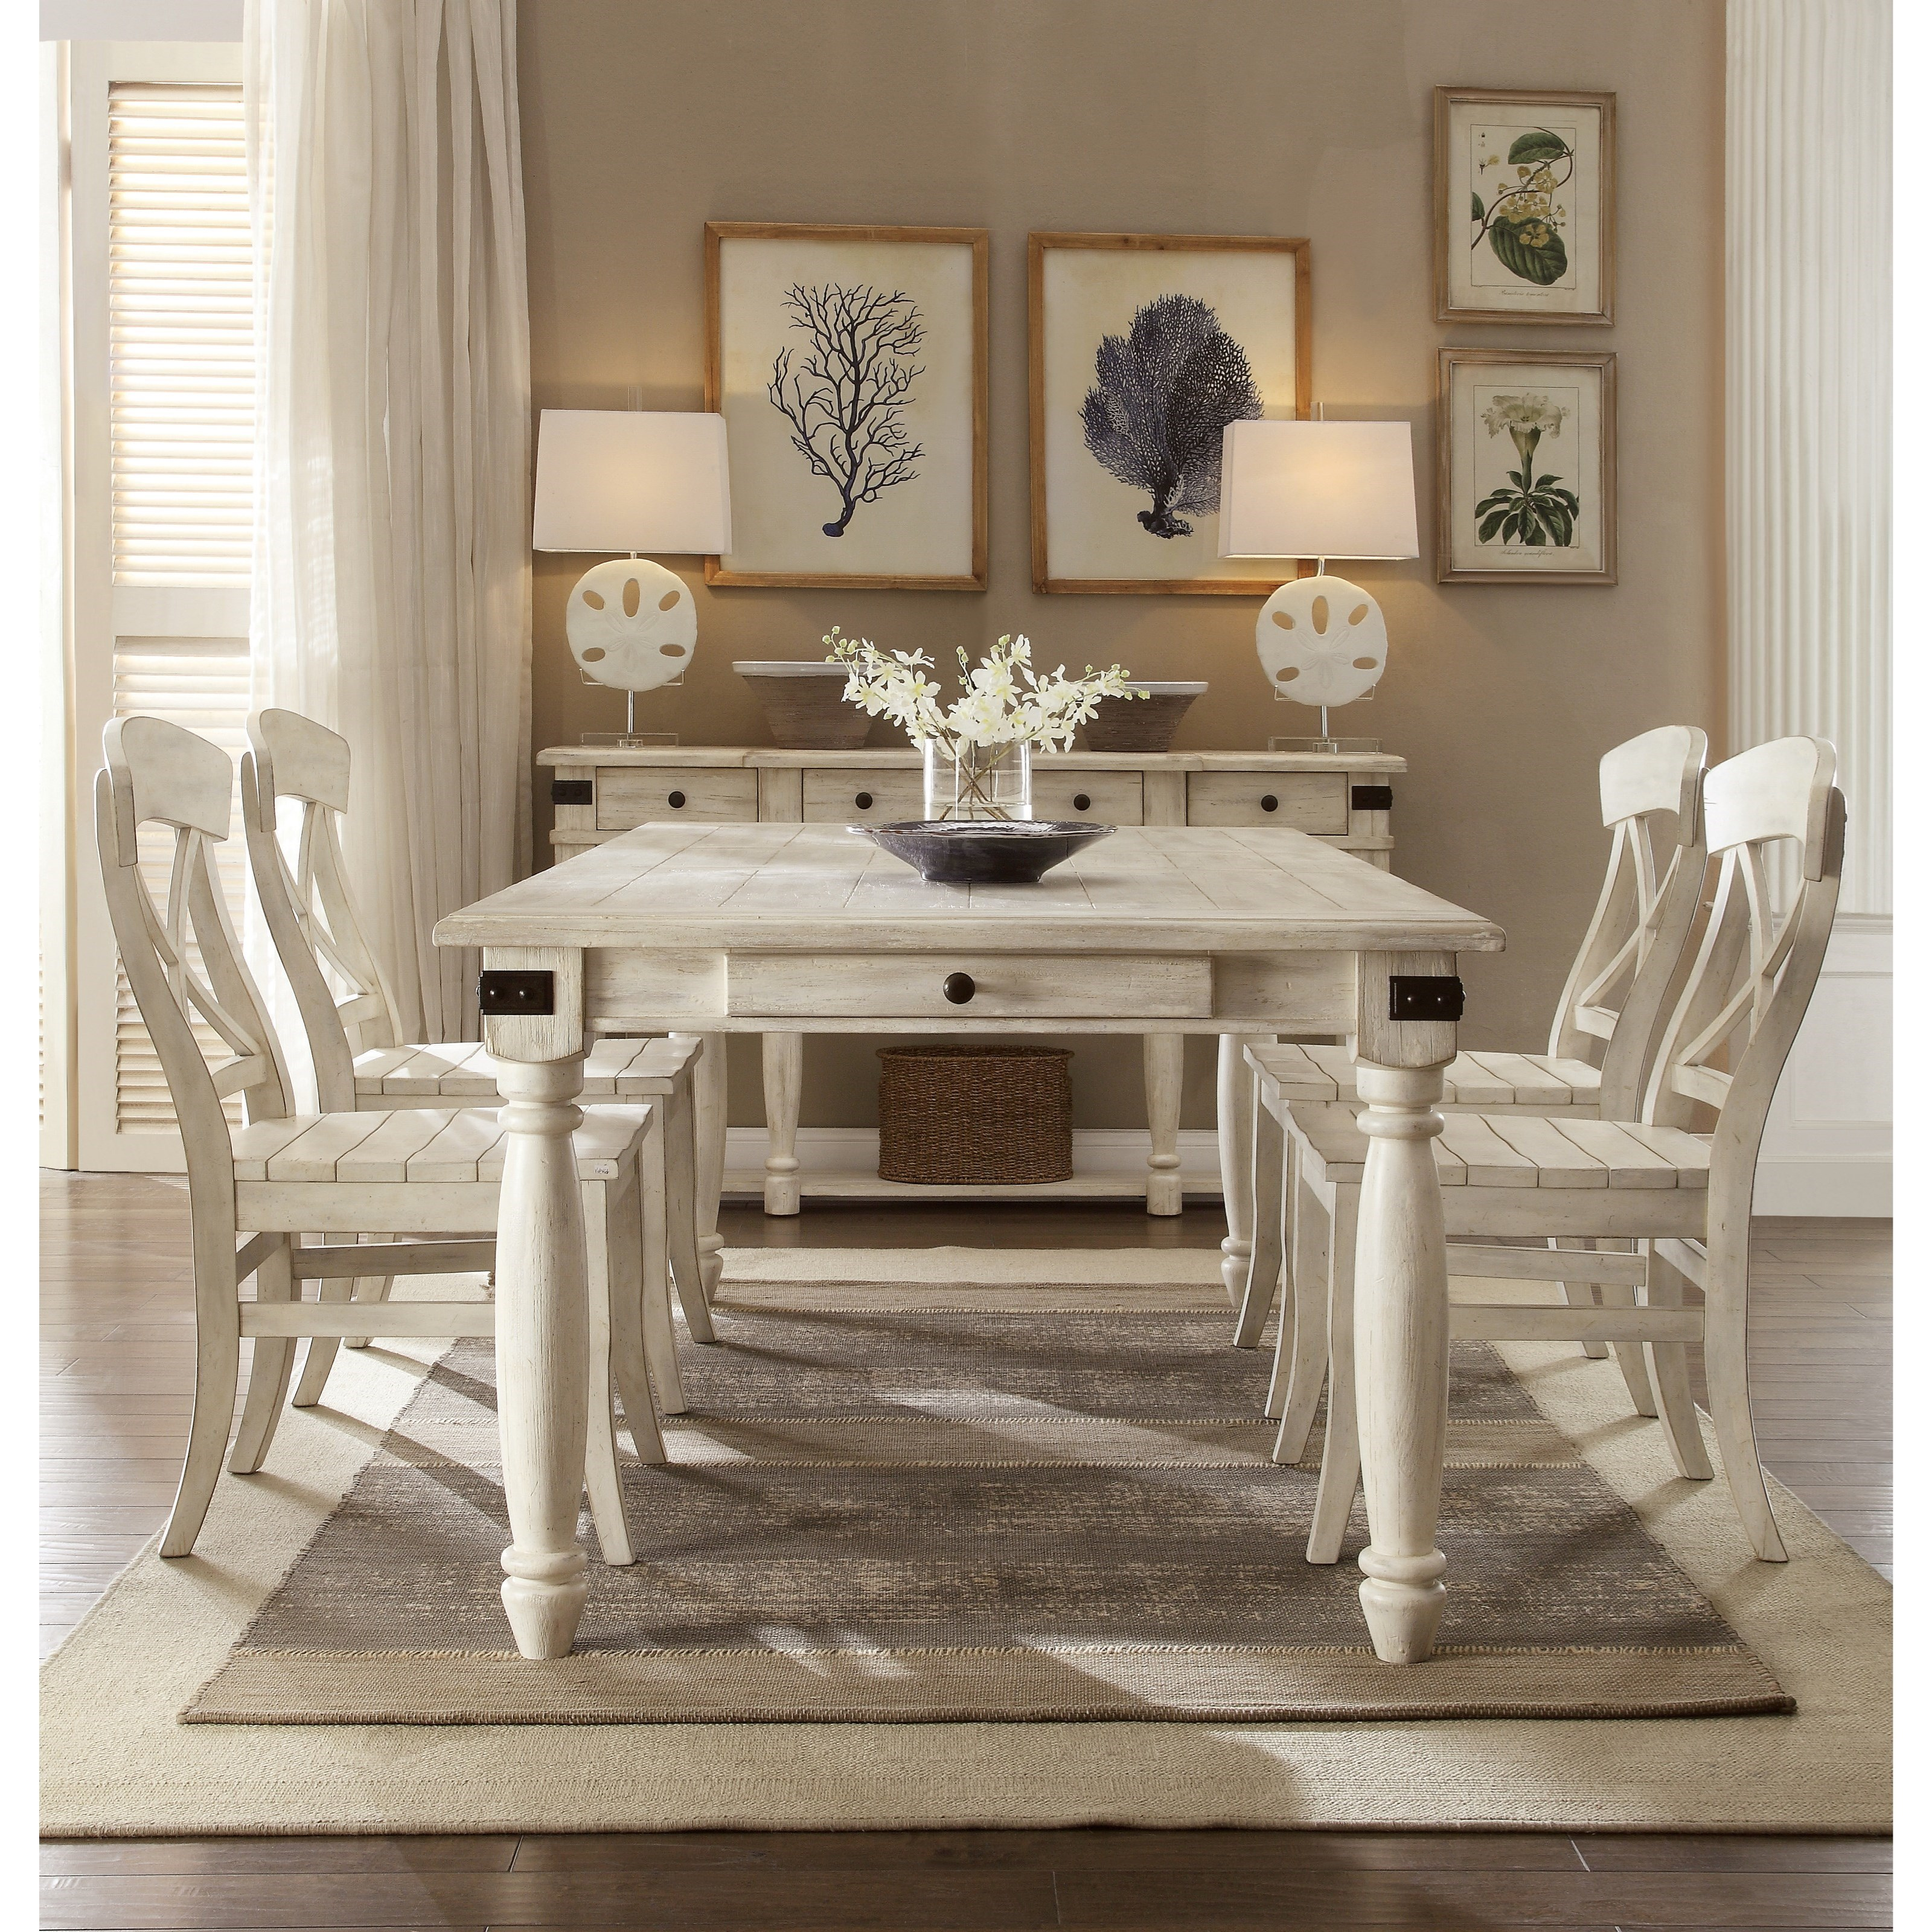 Riverside furniture regan casual dining room group for Casual dining room furniture